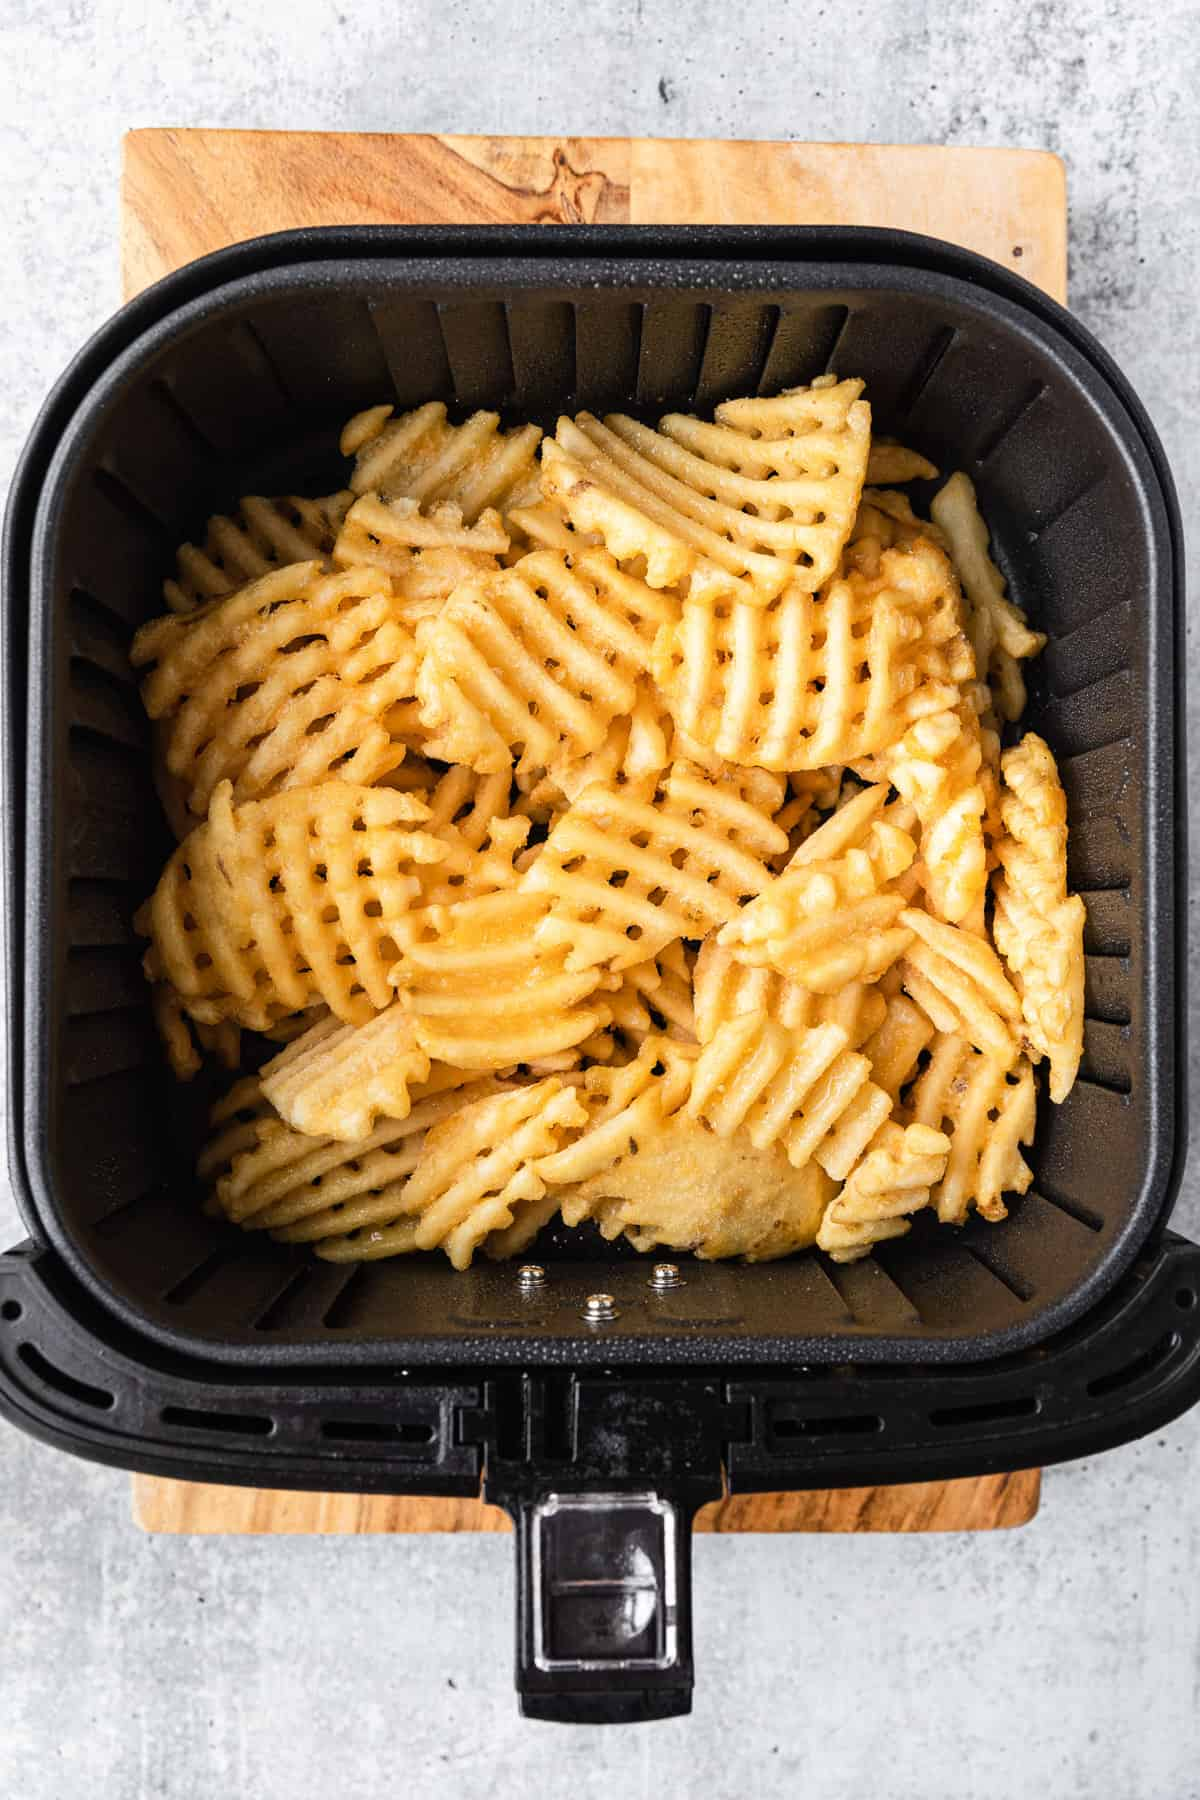 frozen waffle fries in the basket of an air fryer